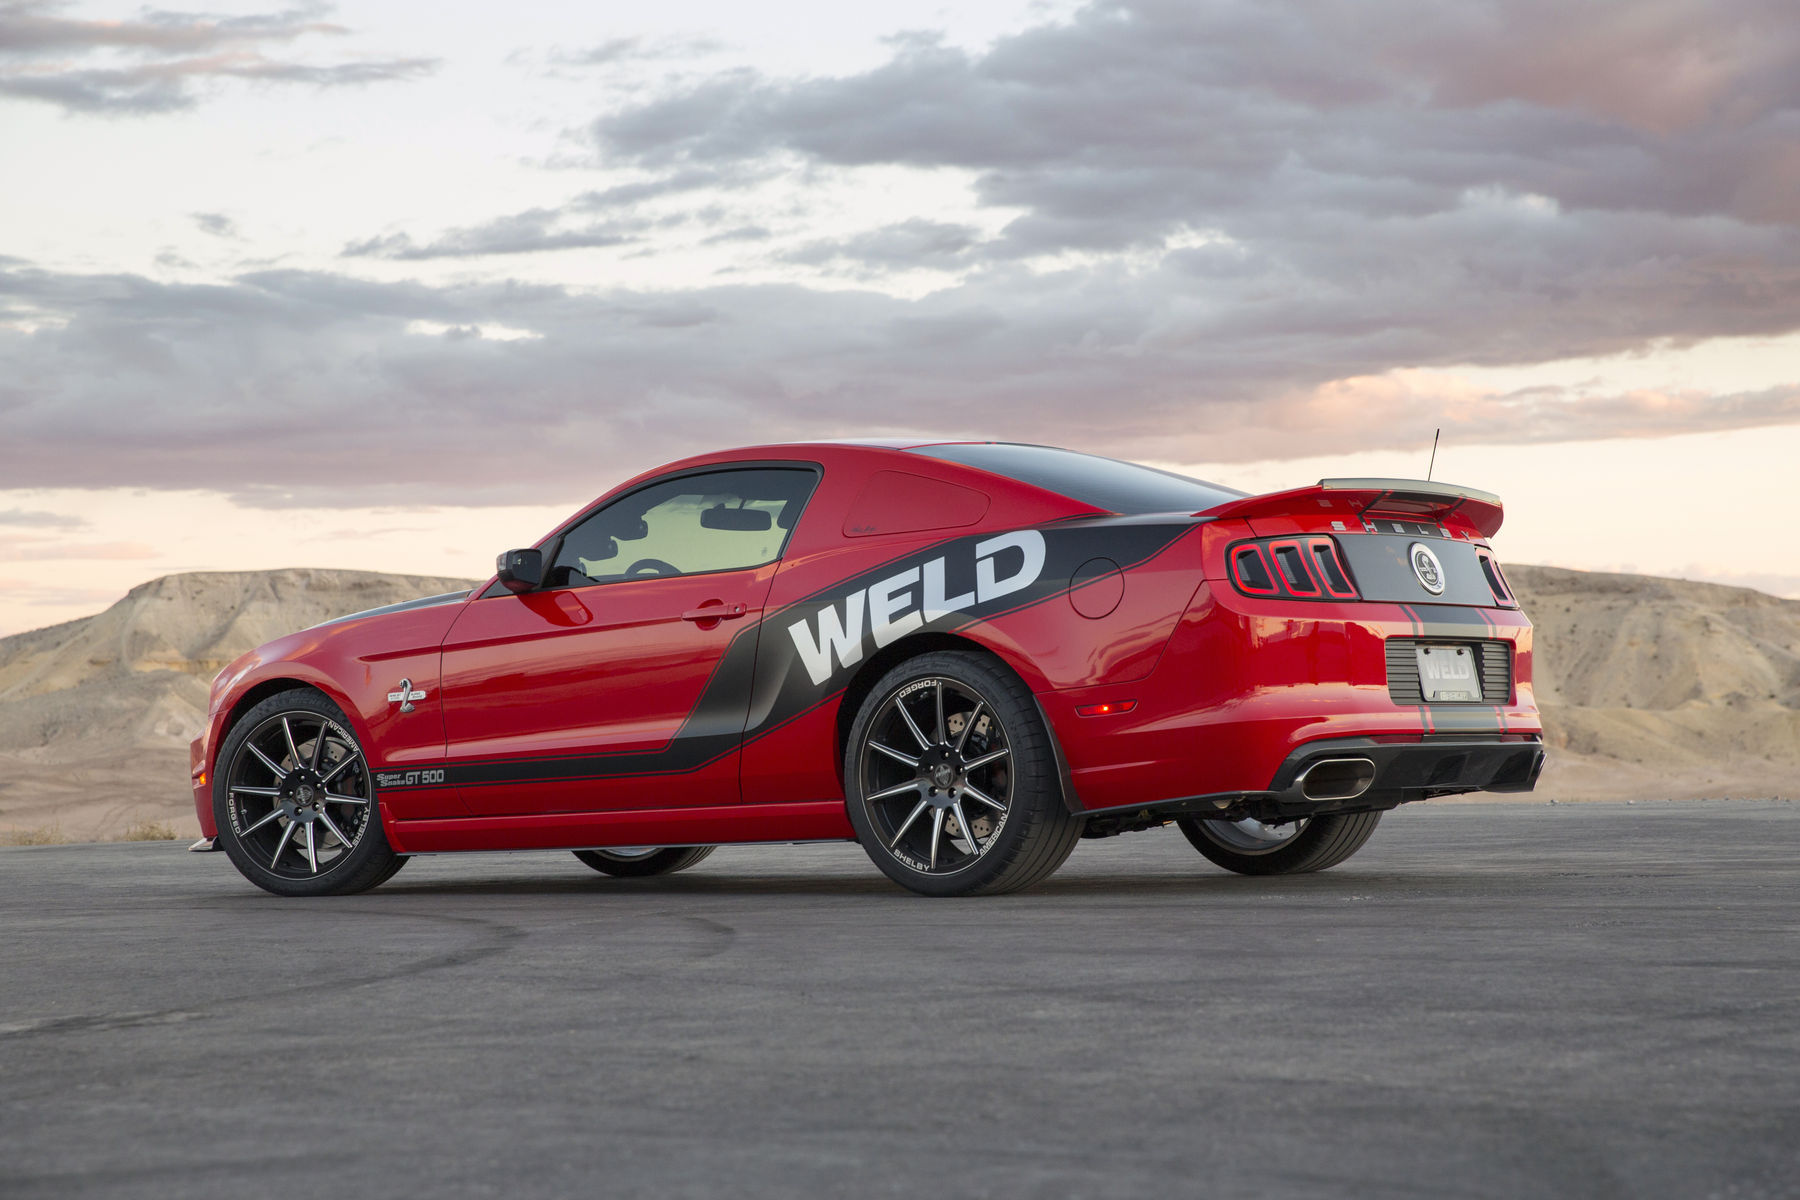 2014 Ford Shelby GT500 | 2014 Shelby GT500 Super Snake WELD Edition